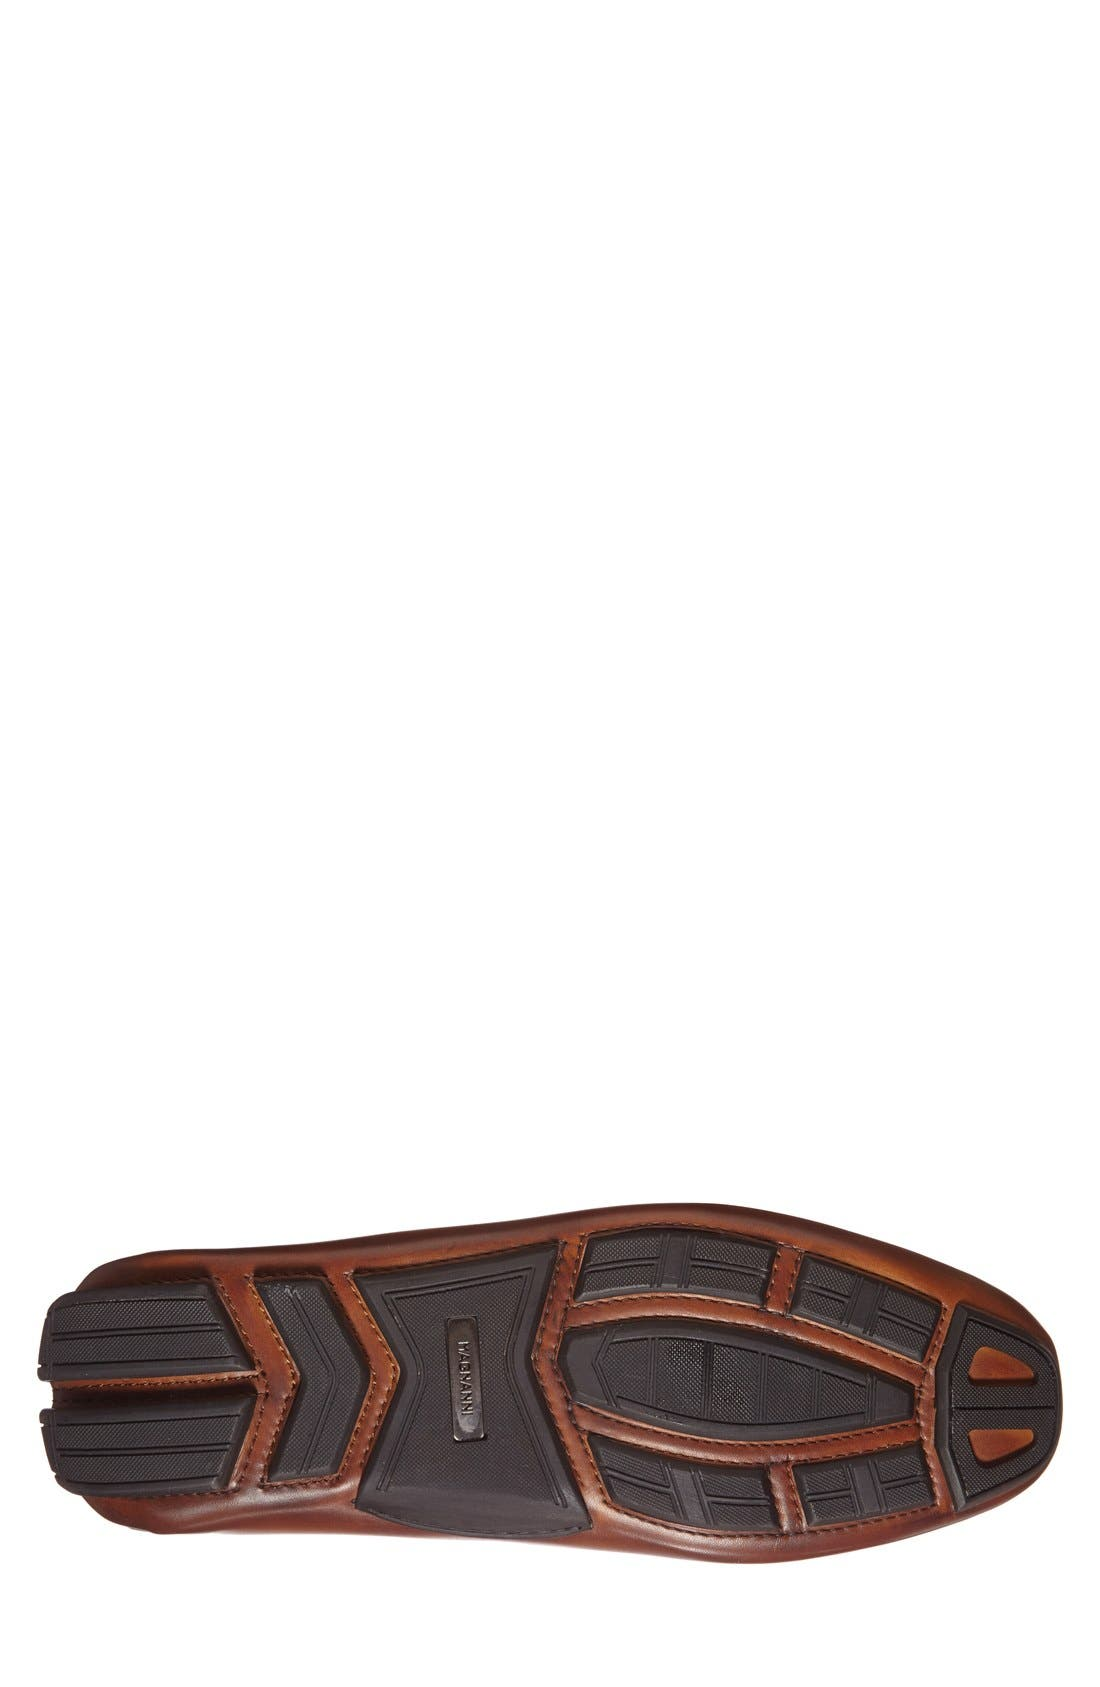 'Dylan' Leather Driving Shoe,                             Alternate thumbnail 21, color,